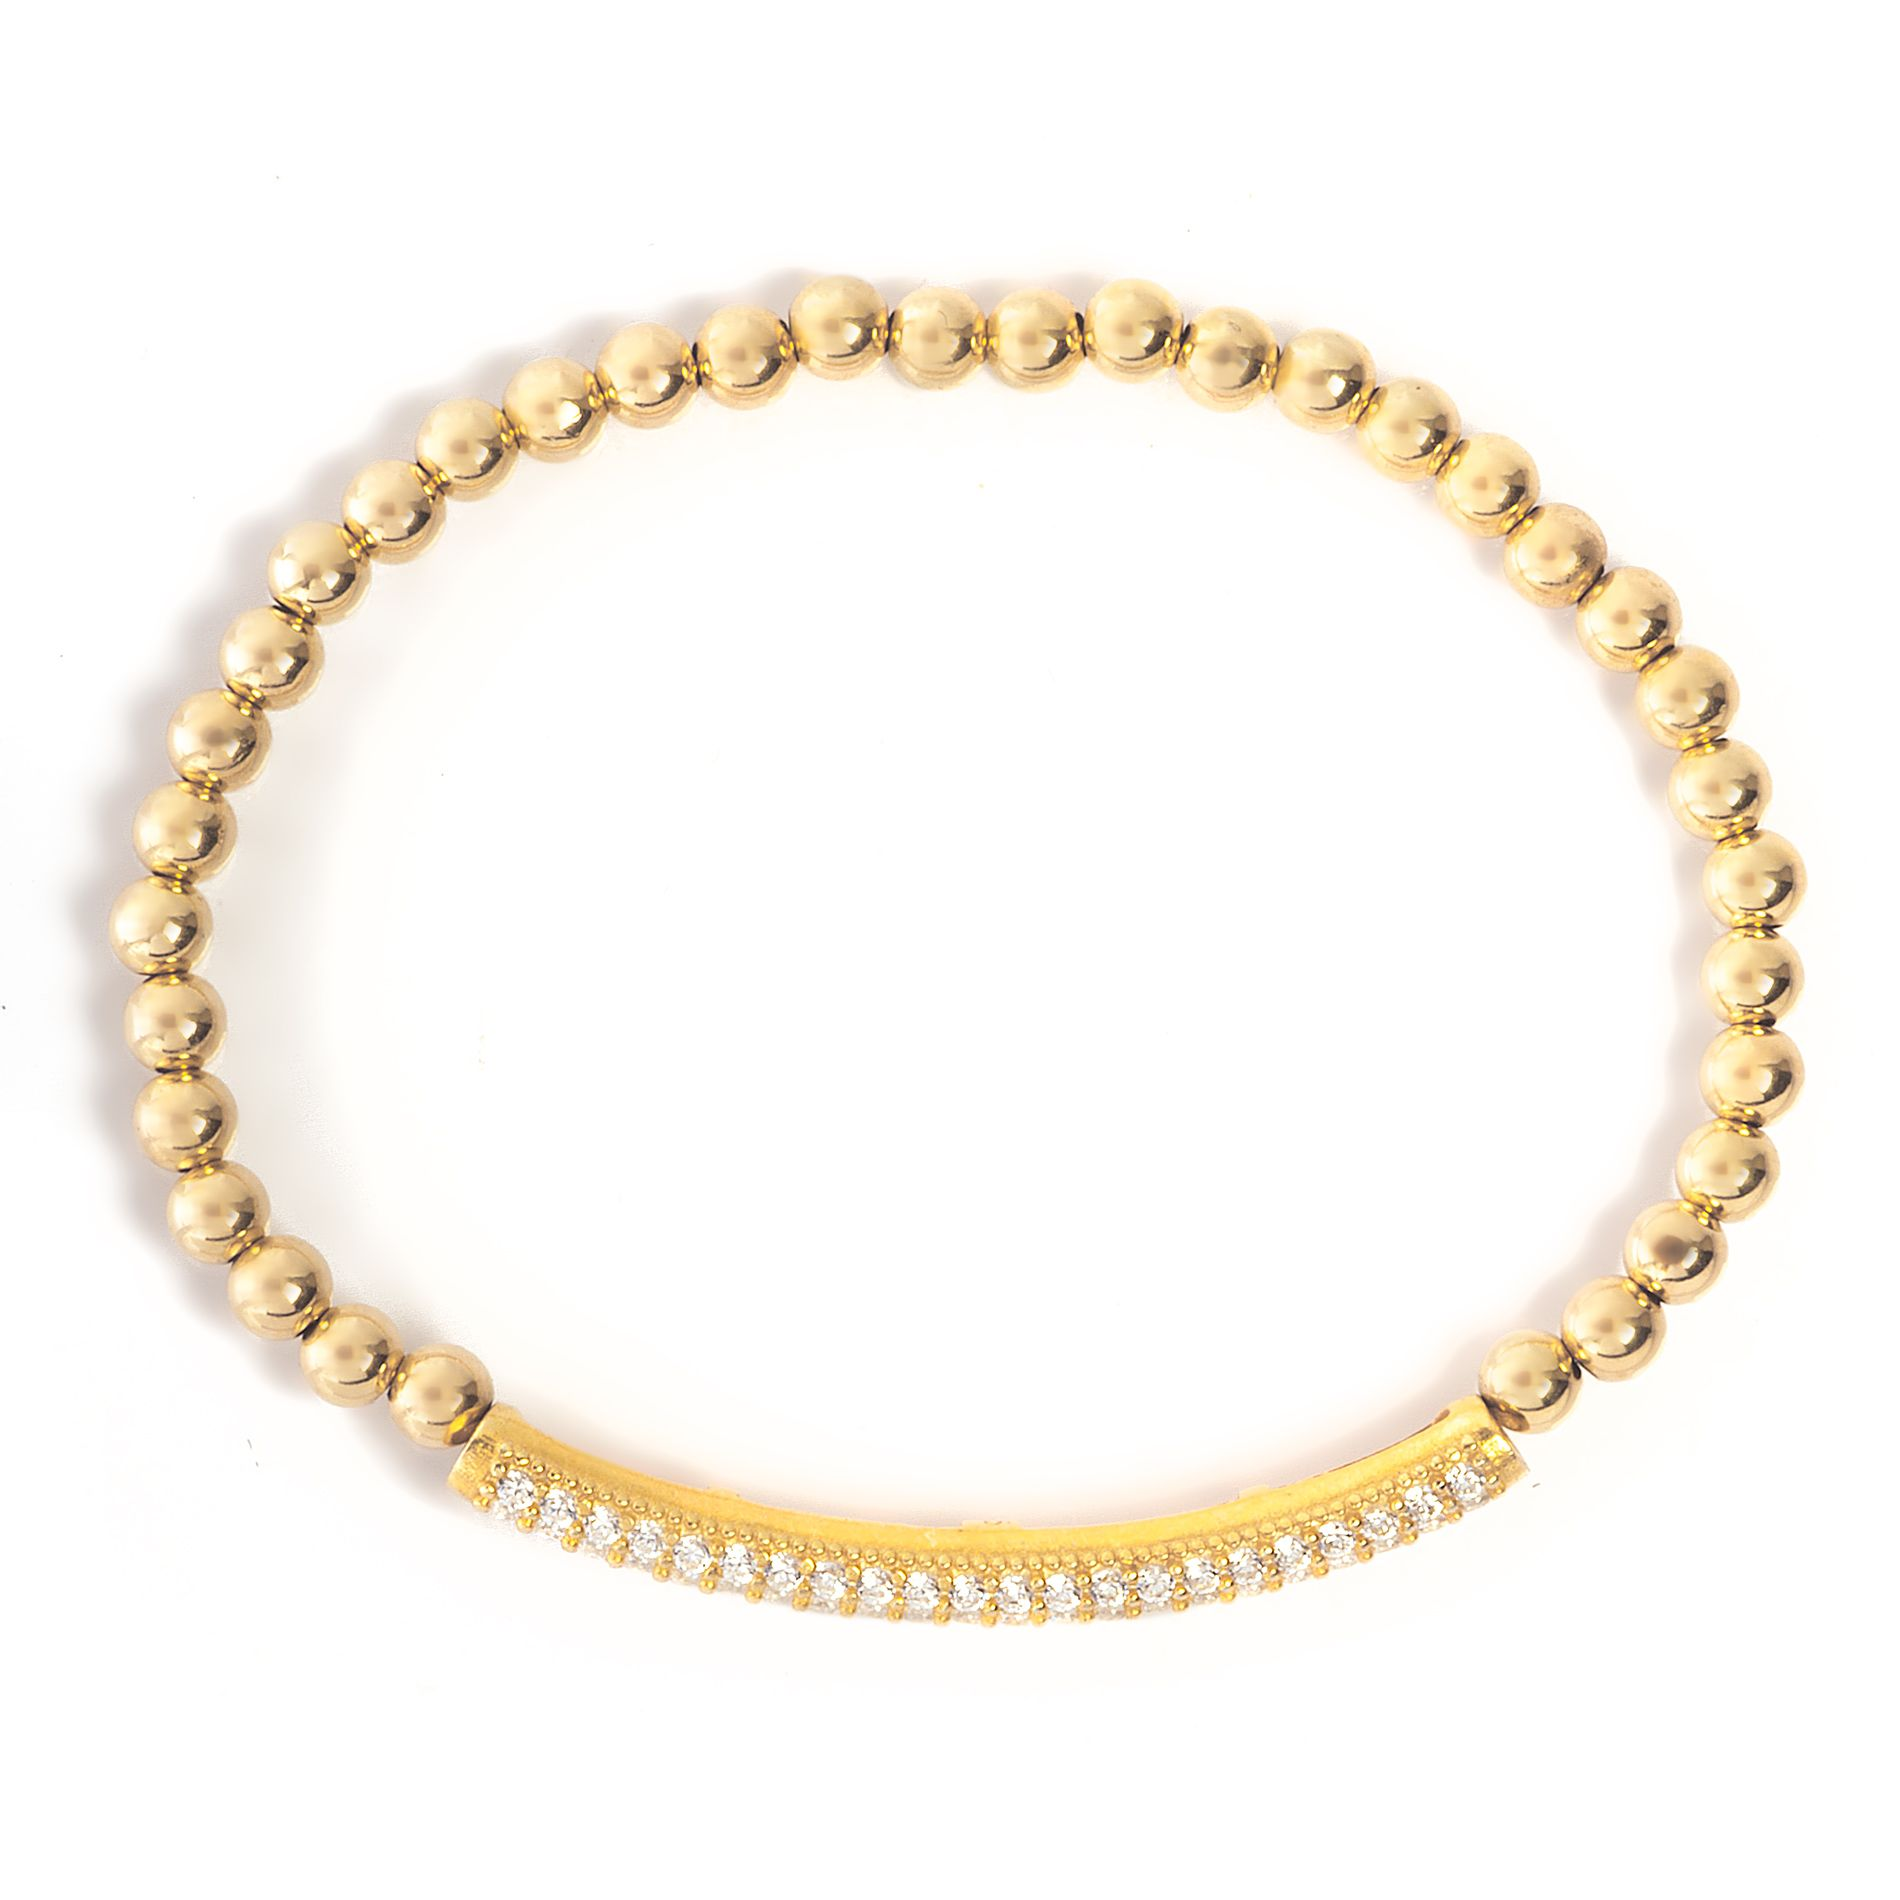 Gold filled beaded bracelet with crystal bar